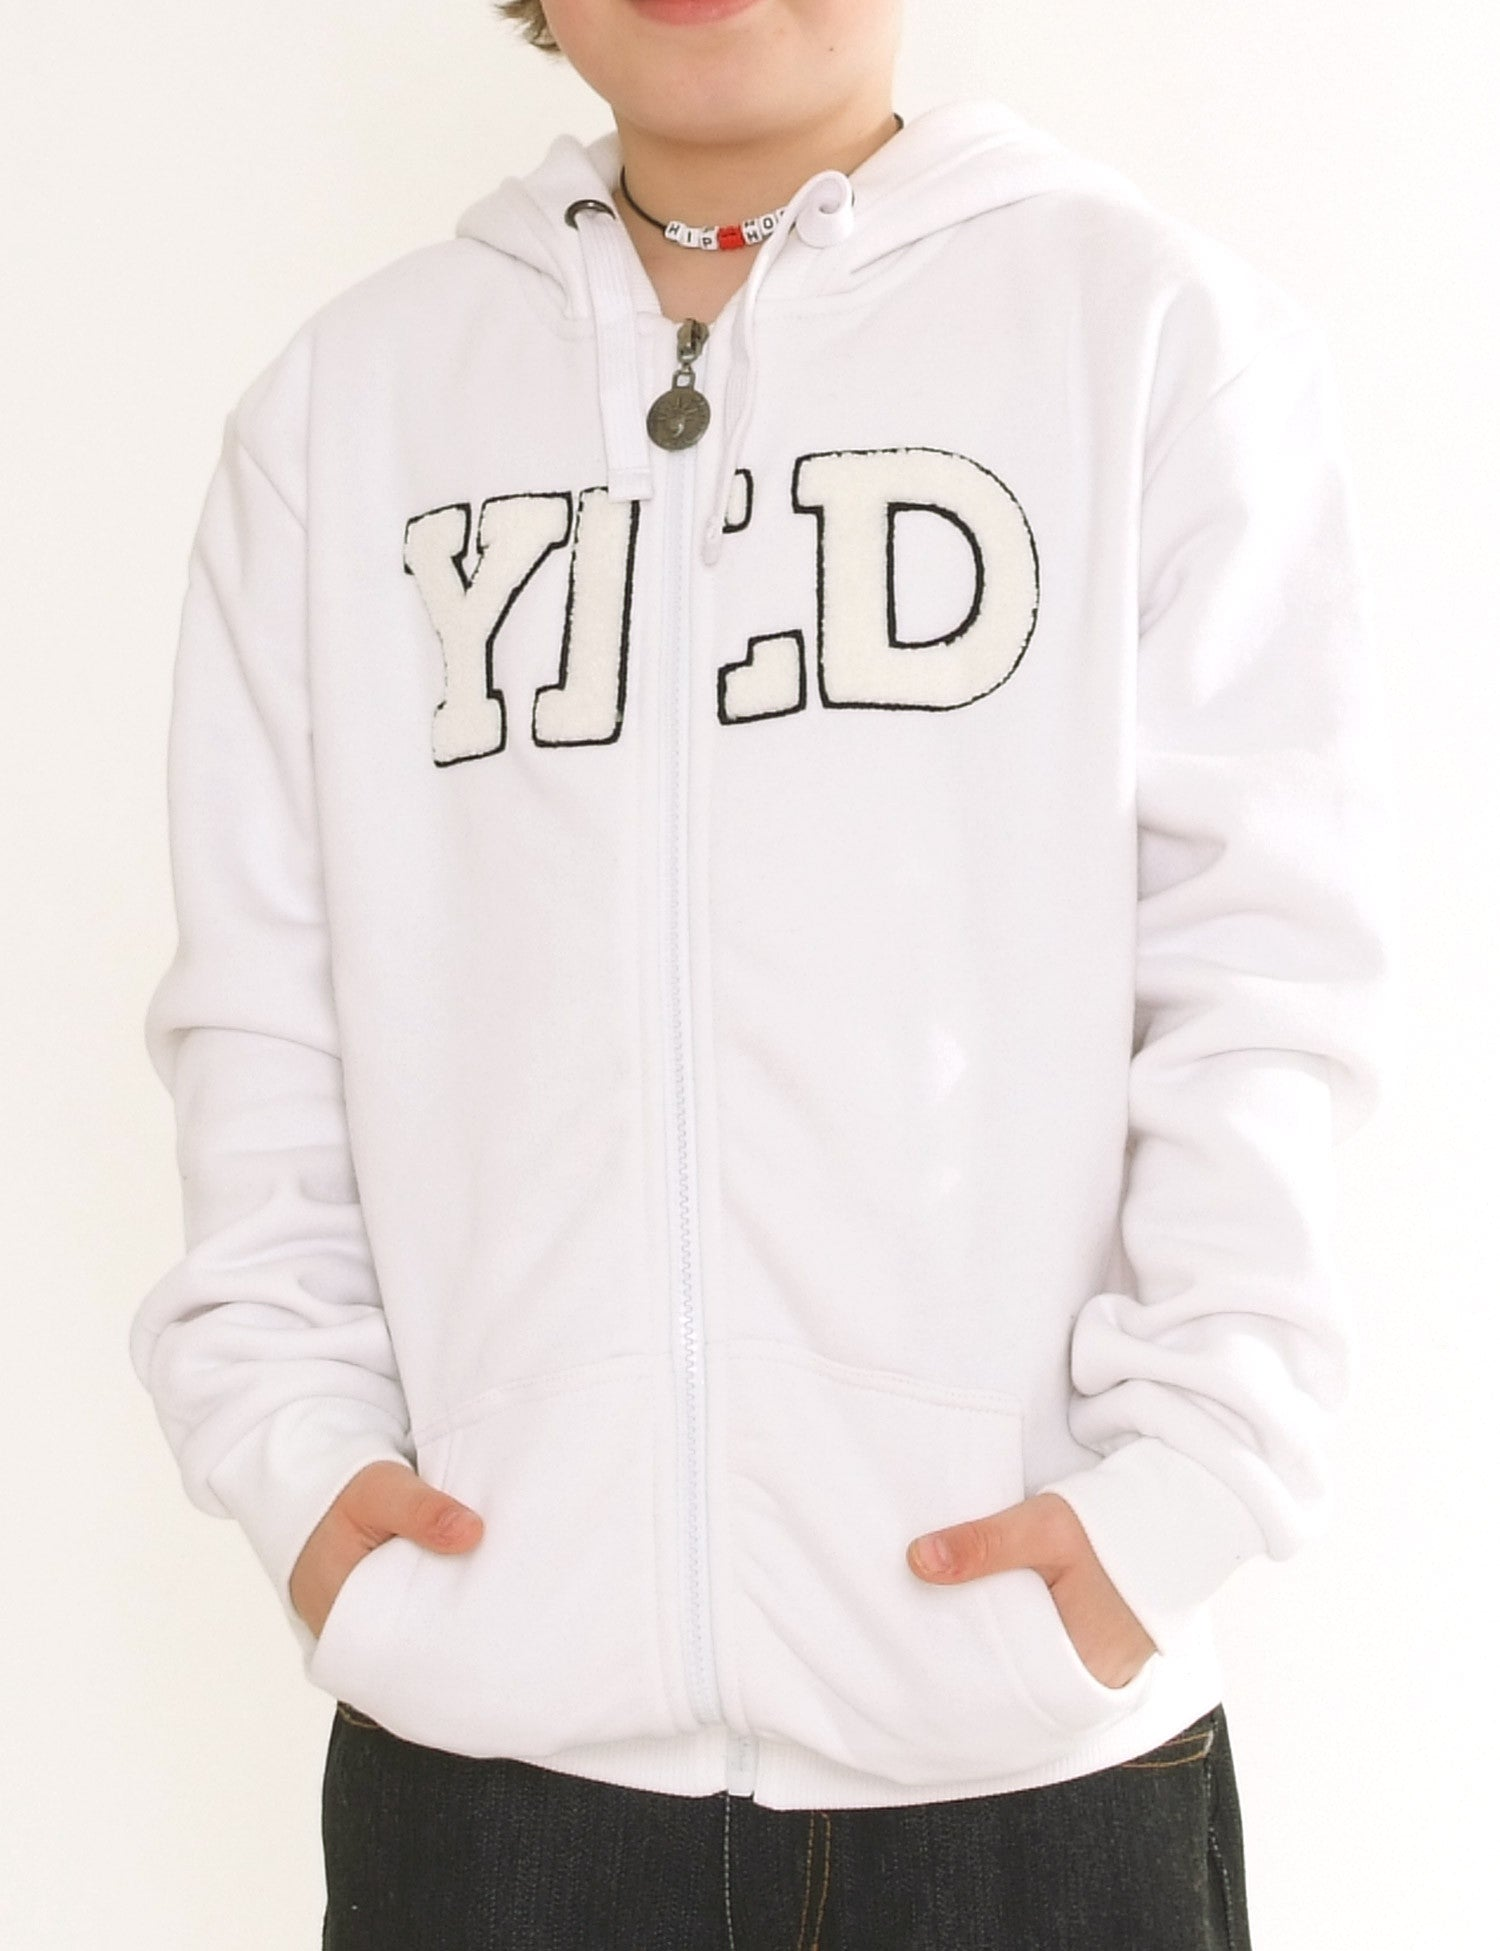 YLD-ZH-002 Kids Zip hoodies White